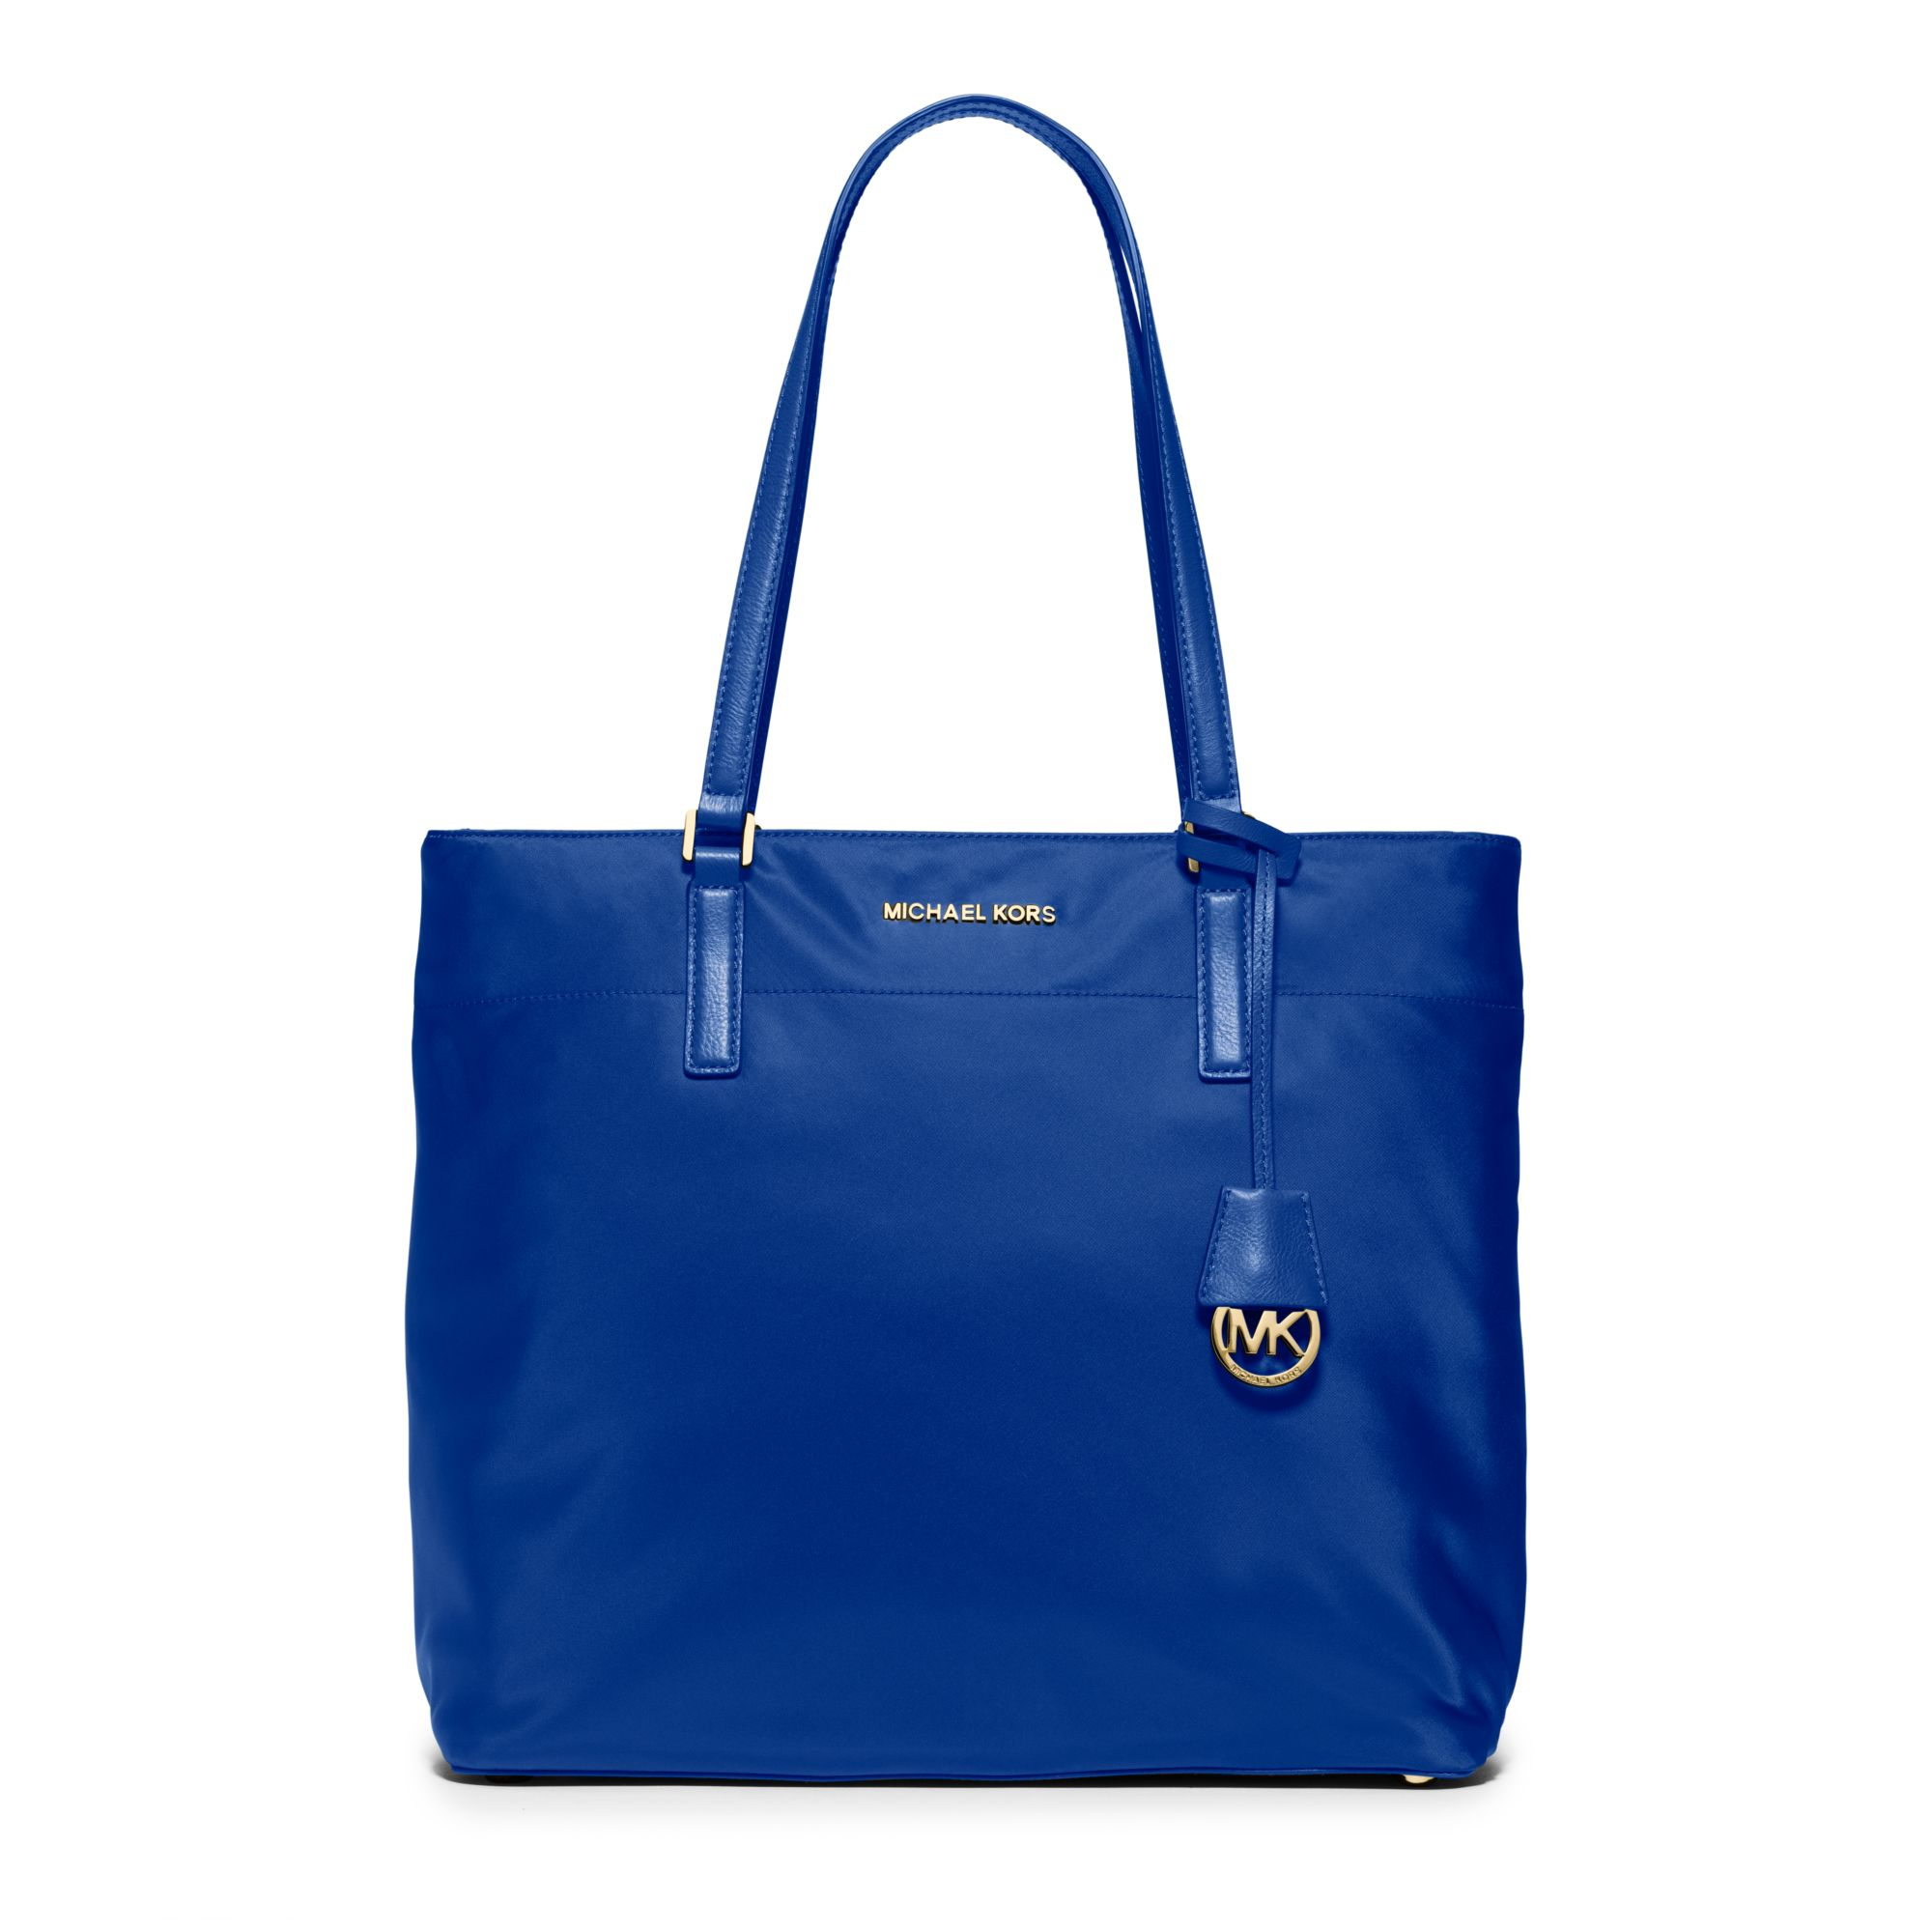 Michael kors Morgan Large Nylon Tote in Blue | Lyst